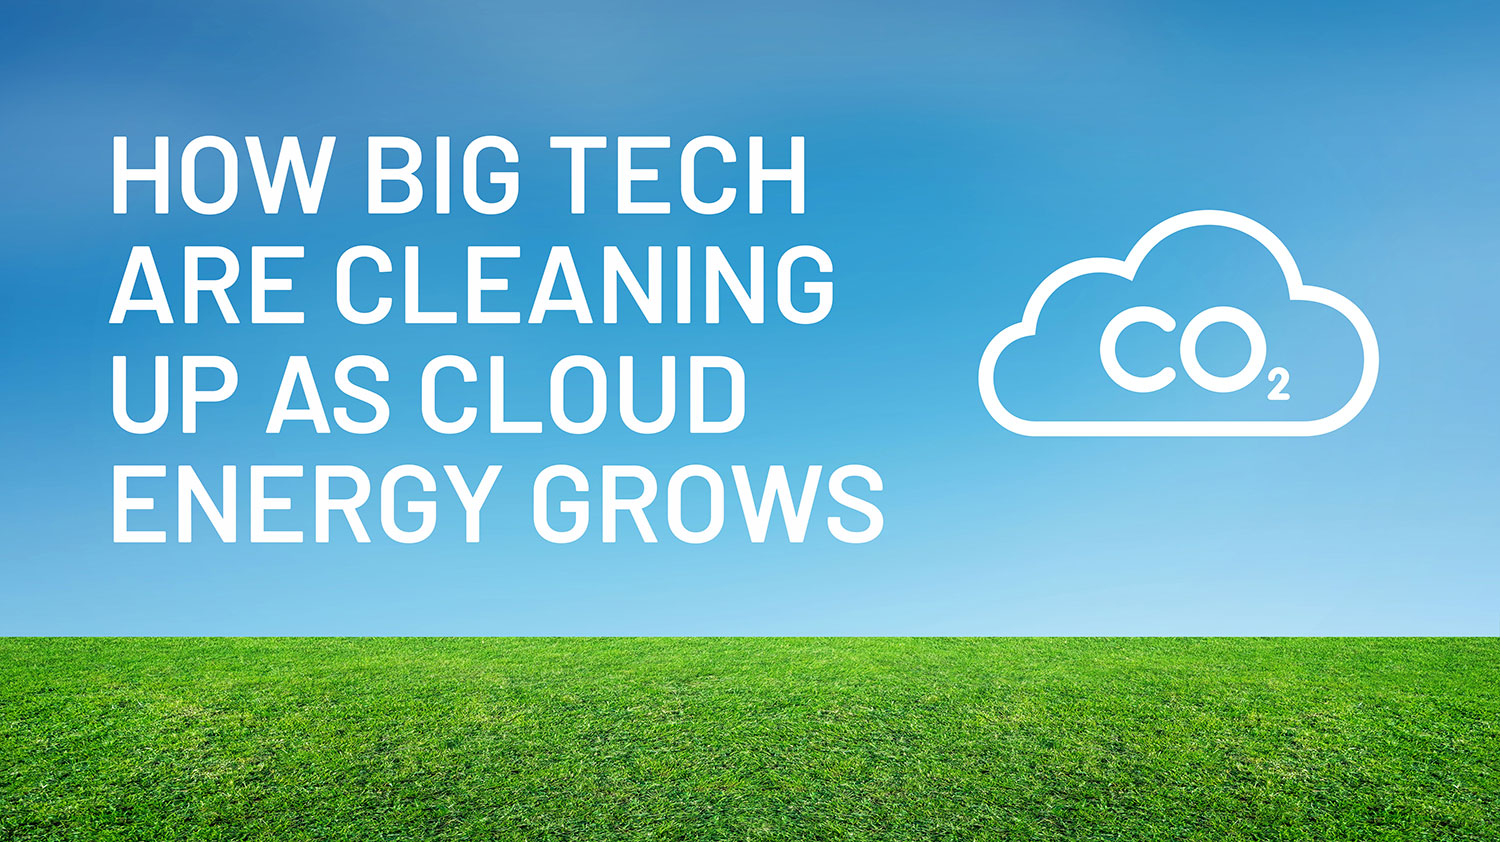 How Big Tech are Cleaning Up As Cloud Energy Grows   Big Tech   CO2   Zella DC